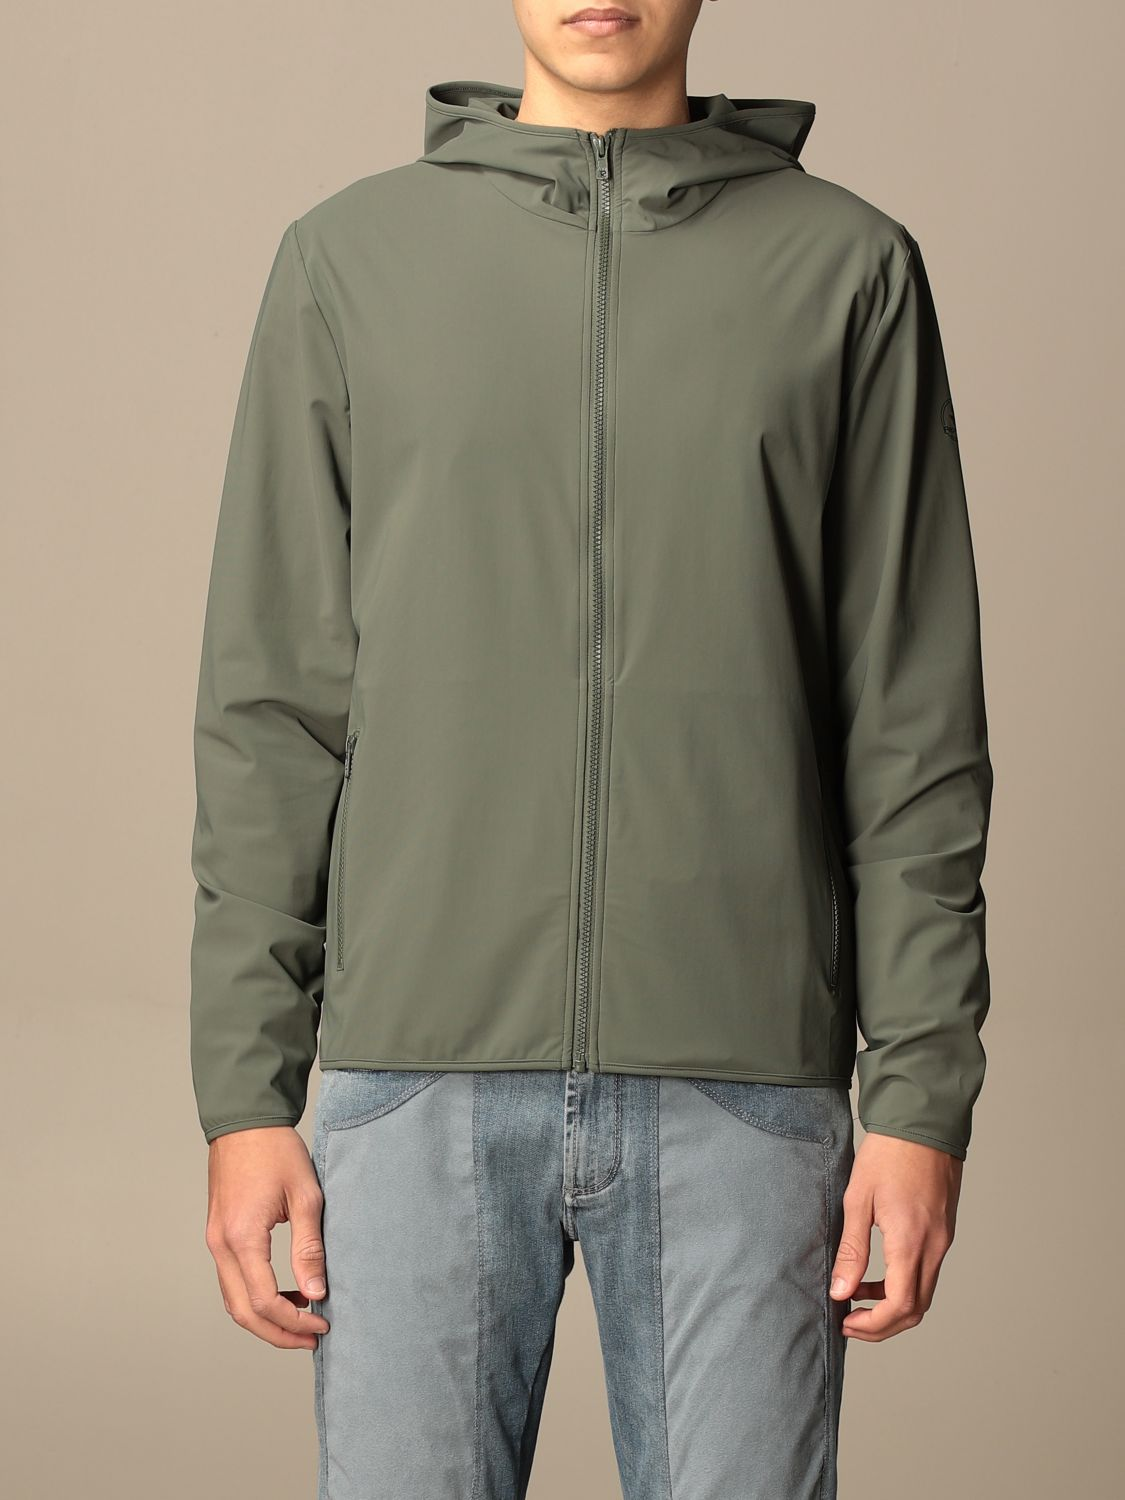 Giacca Pro-Tech By Save The Duck: Giacca con cappuccio Pro-Tech by Save The Duck militare 1